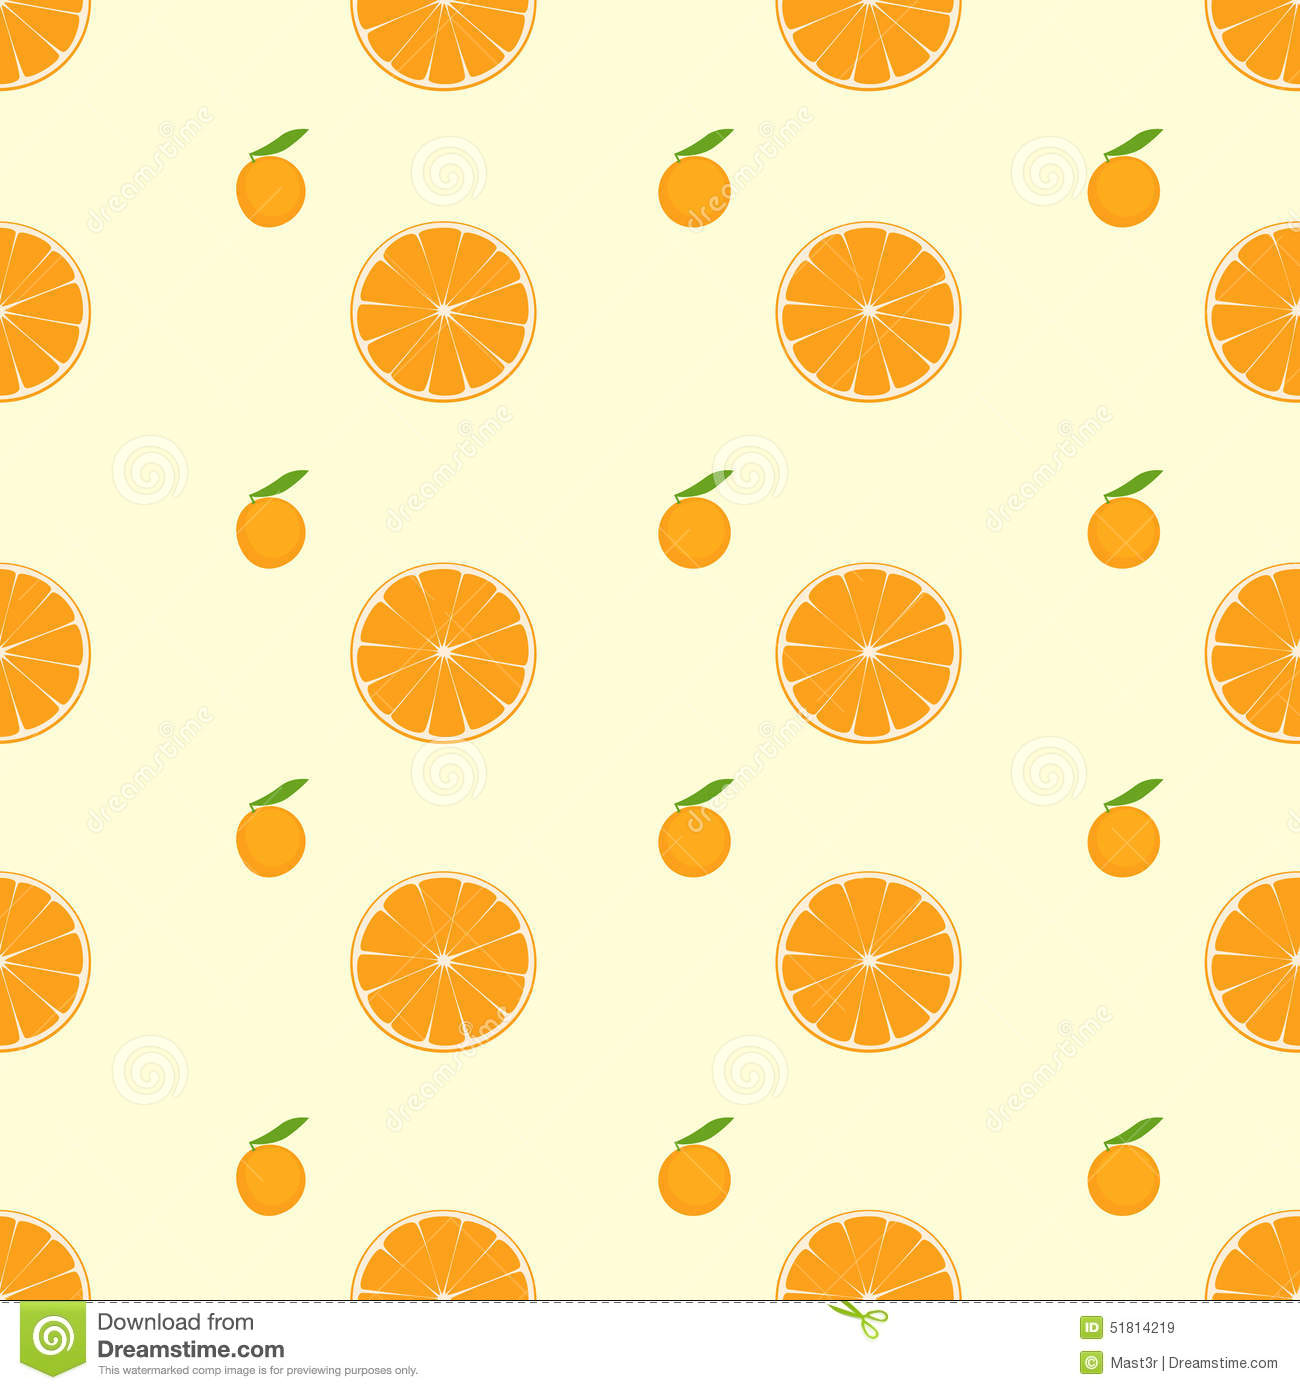 Cute Cartoon Fruit Wallpaper Orange Citrus Fruit Slice Seamless Pattern Vector Stock